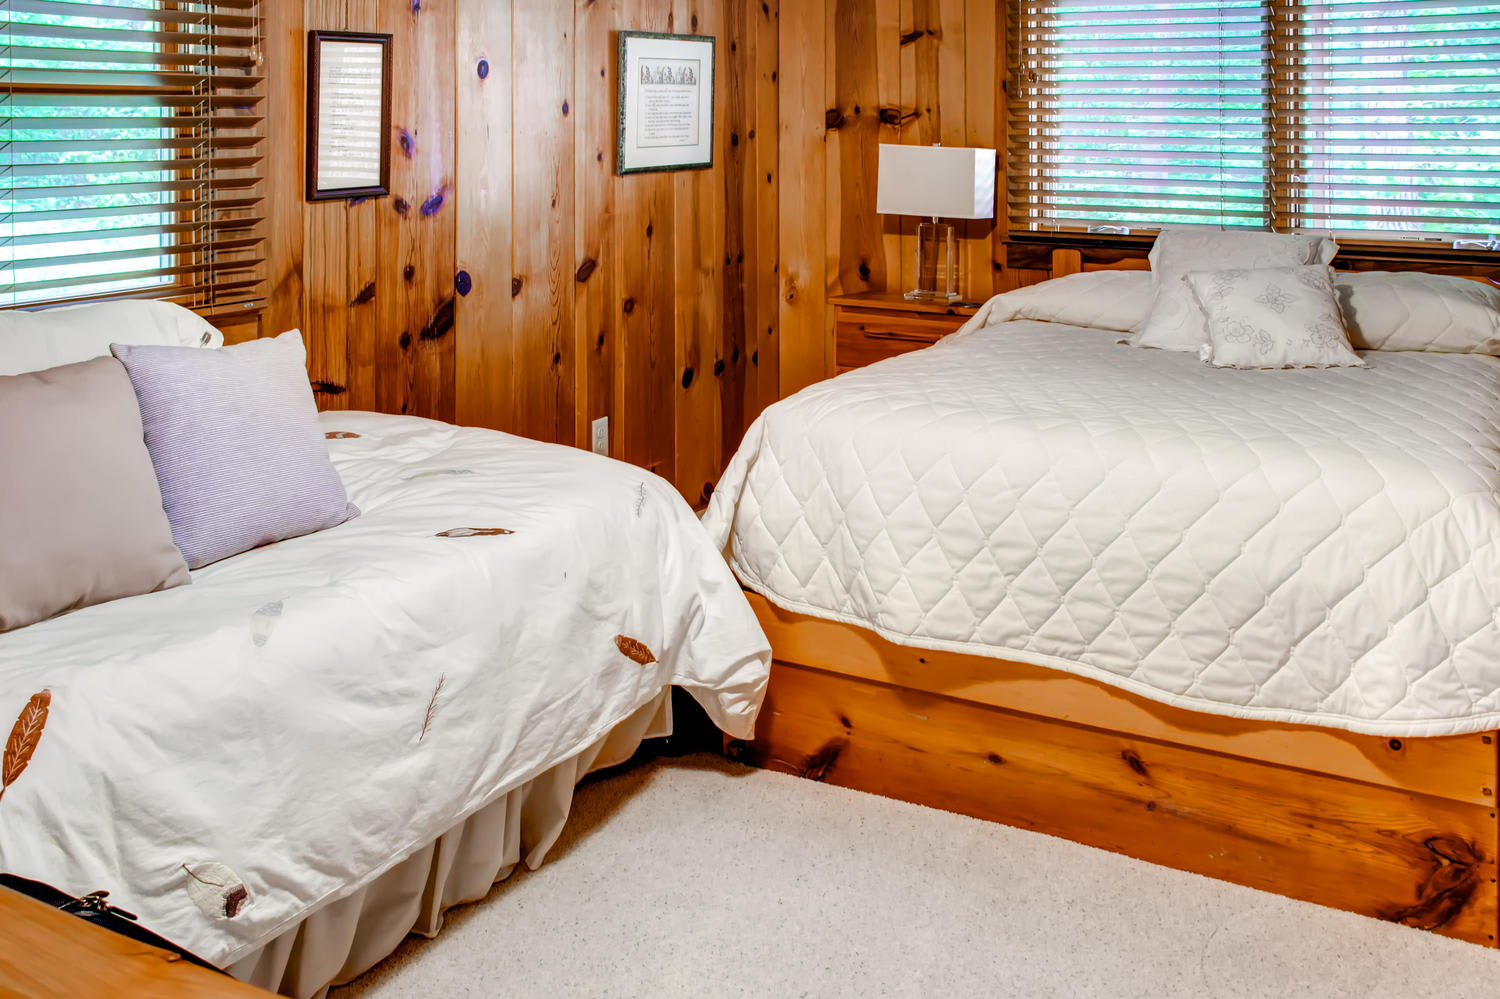 Bedroom 2 | Full Bed, Twin Bed